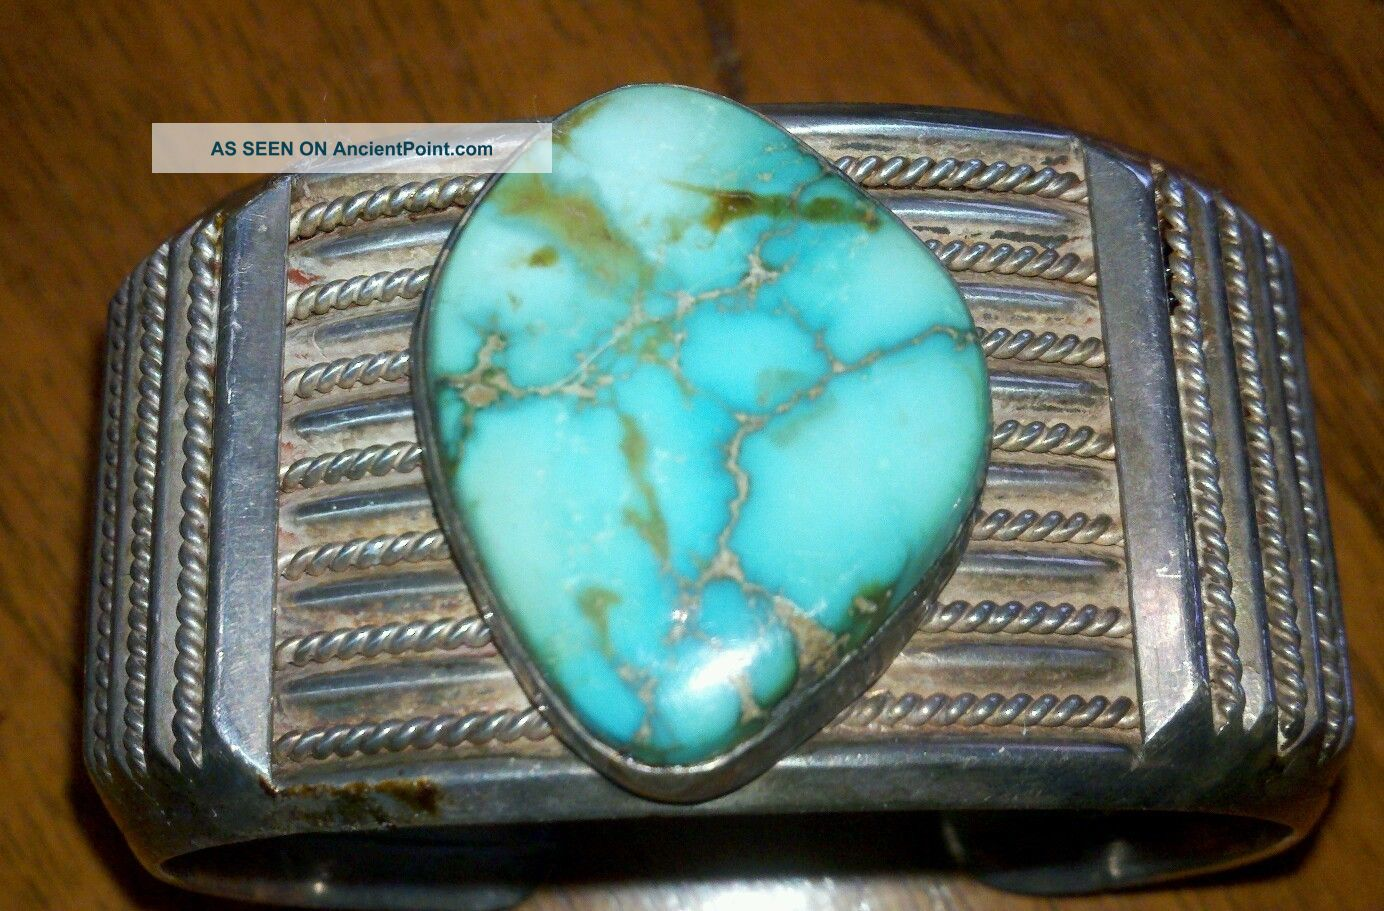 Vintage Mens Hndcrftd Southwestern Sterling Slvr Turquoise Cuff Brclt.  Make Offer Native American photo